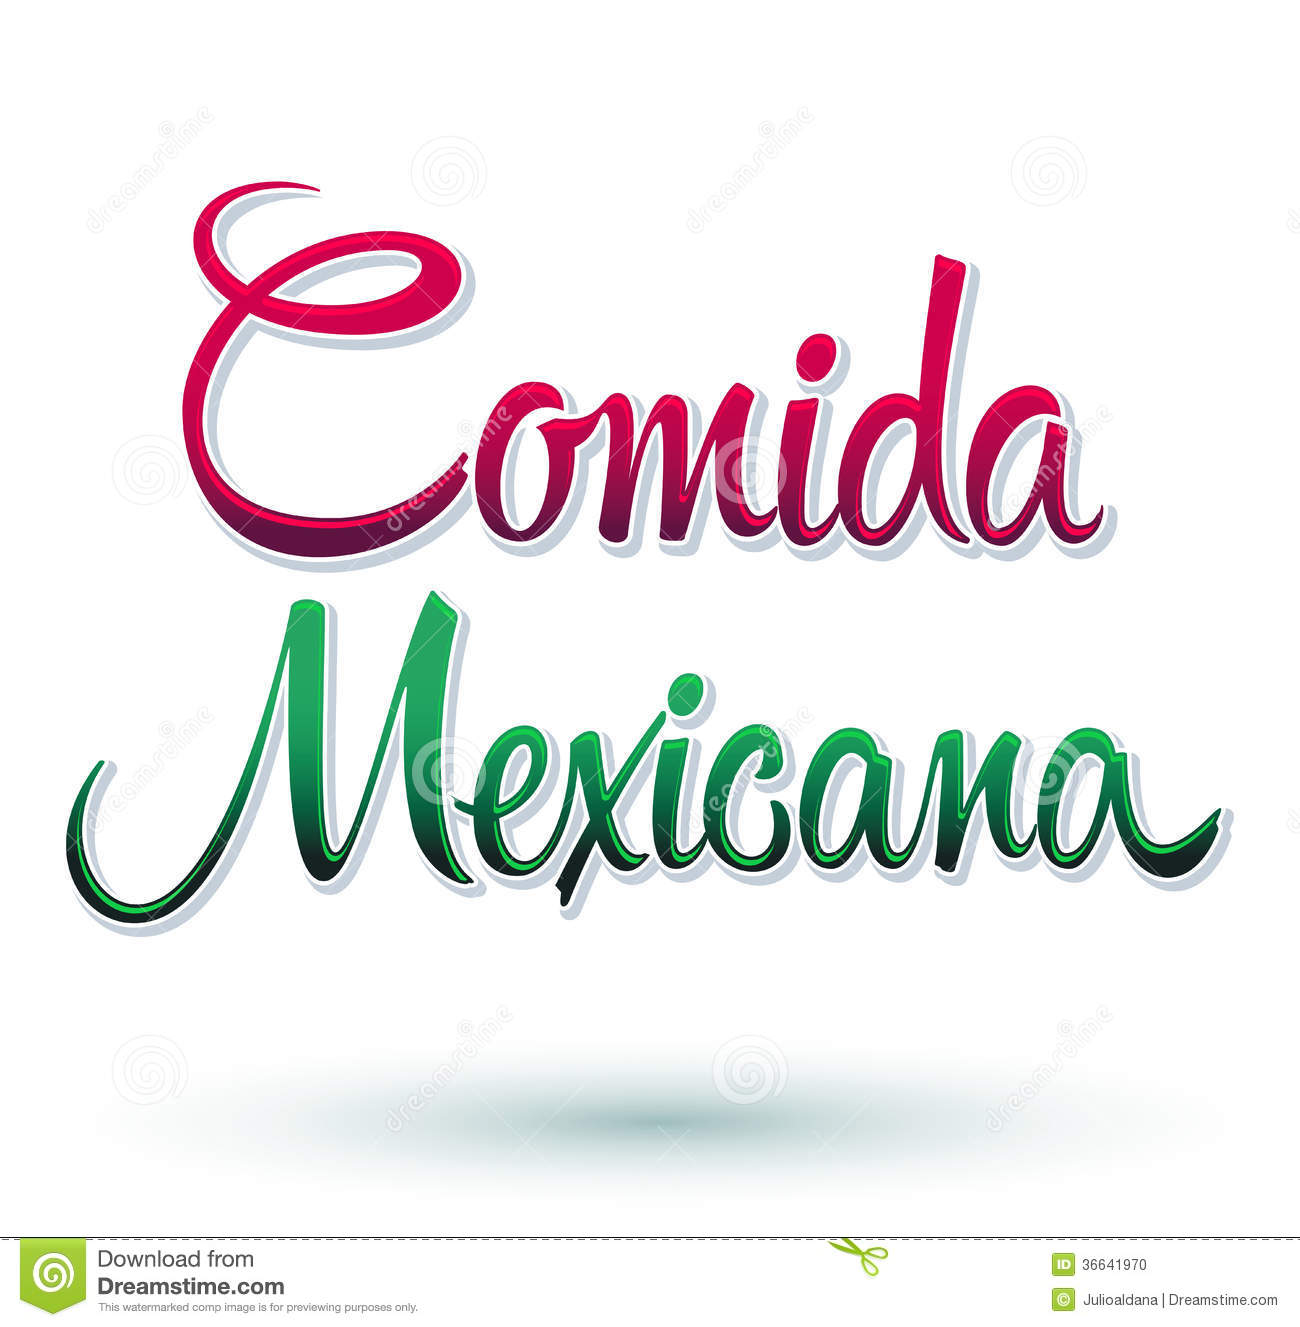 comida mexicana mexican food spanish text stock photo mexican food lago vista mexican food logan square